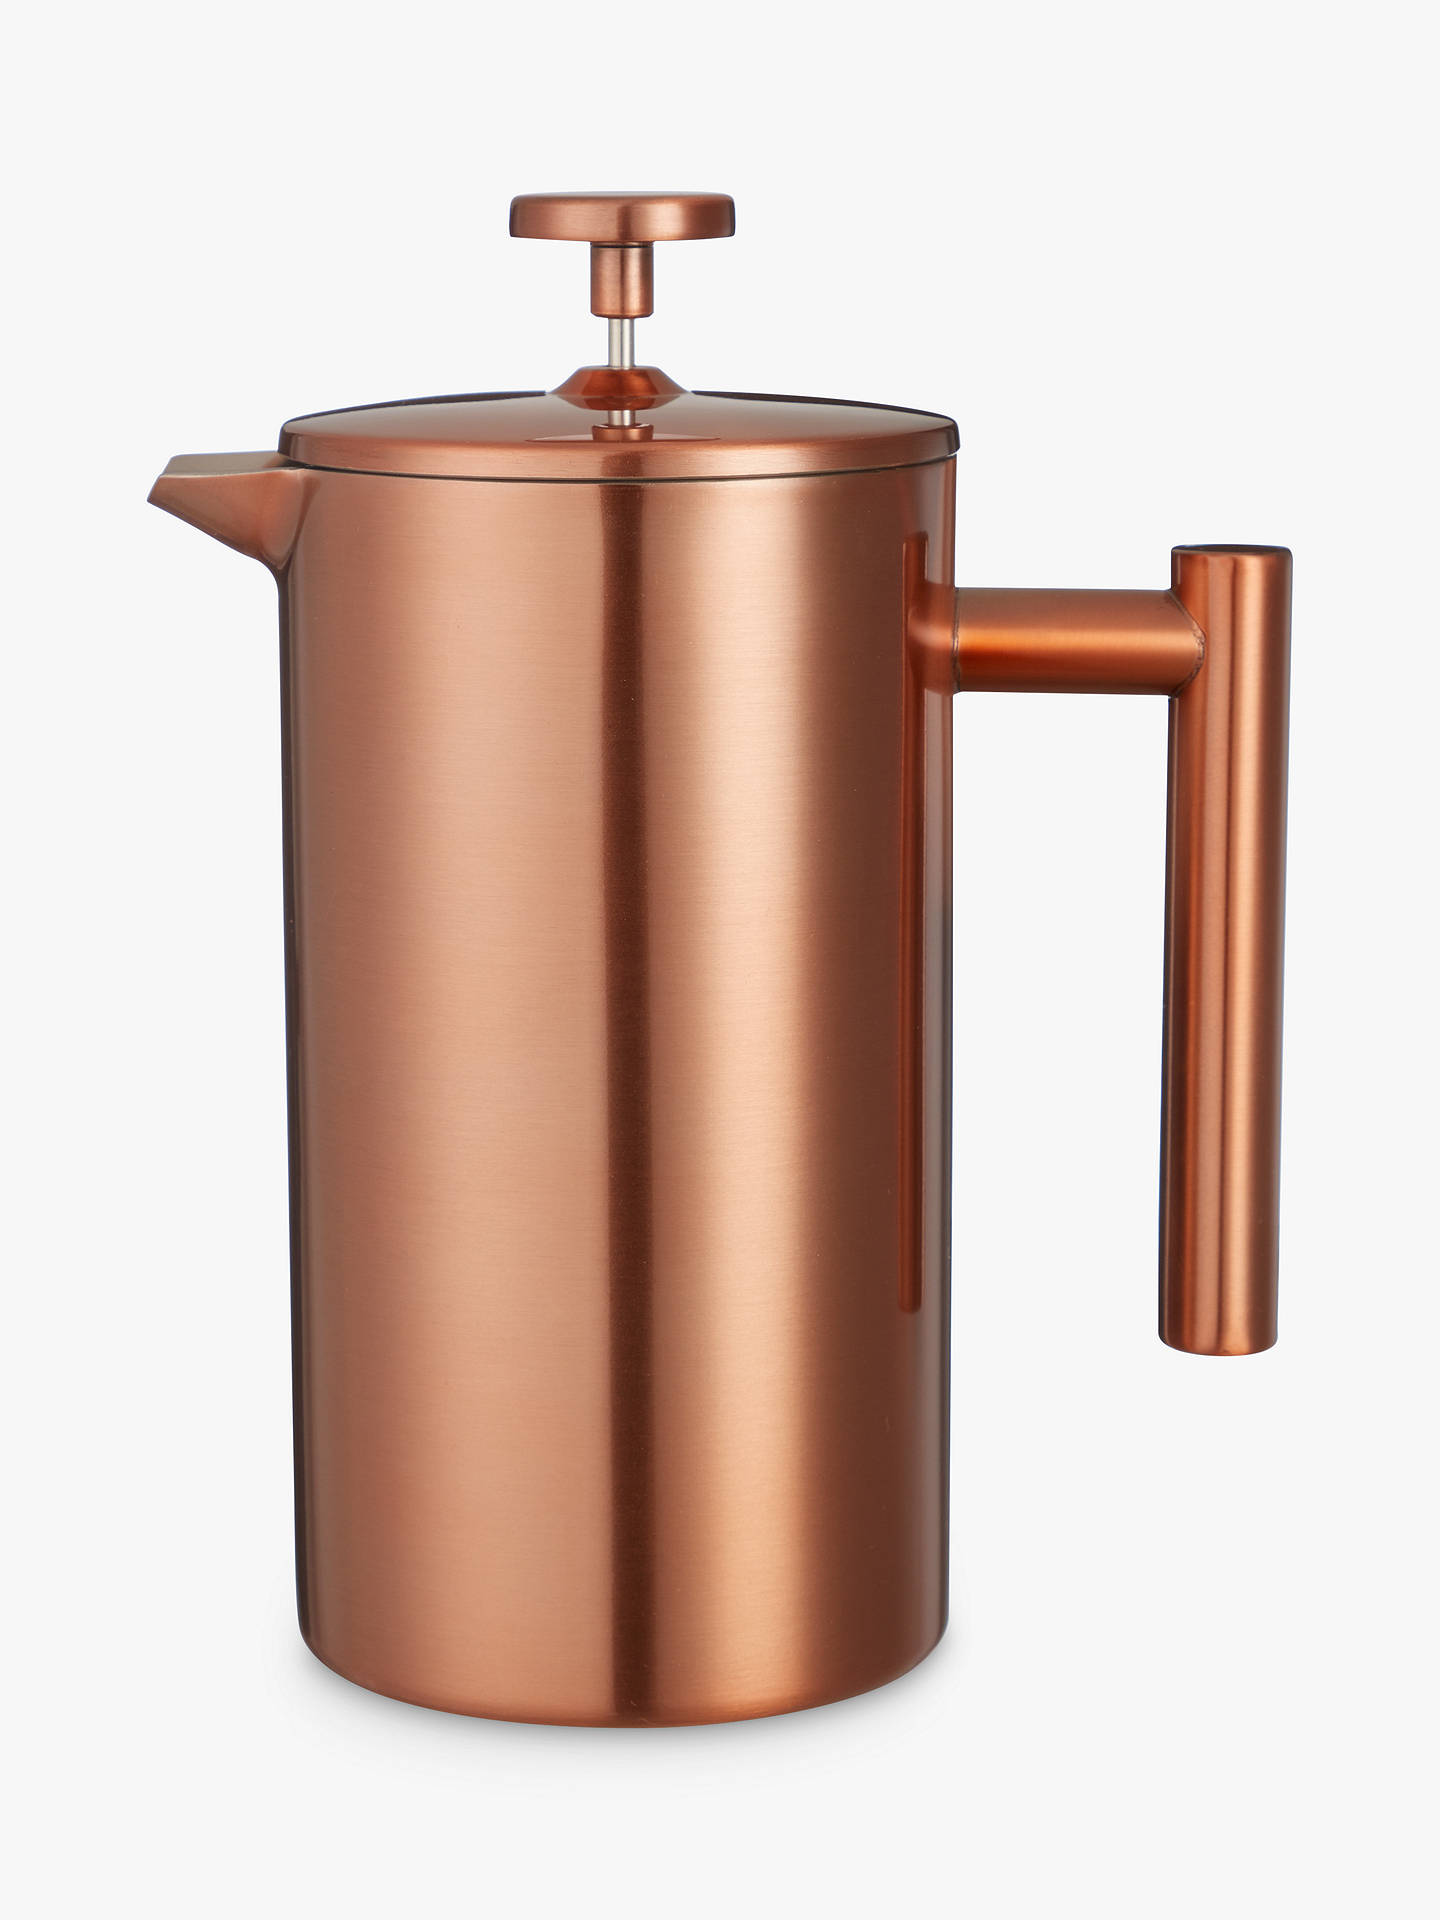 BuyCroft Collection Double Wall Cafetiere, 8 Cup, Copper, 1L Online at johnlewis.com